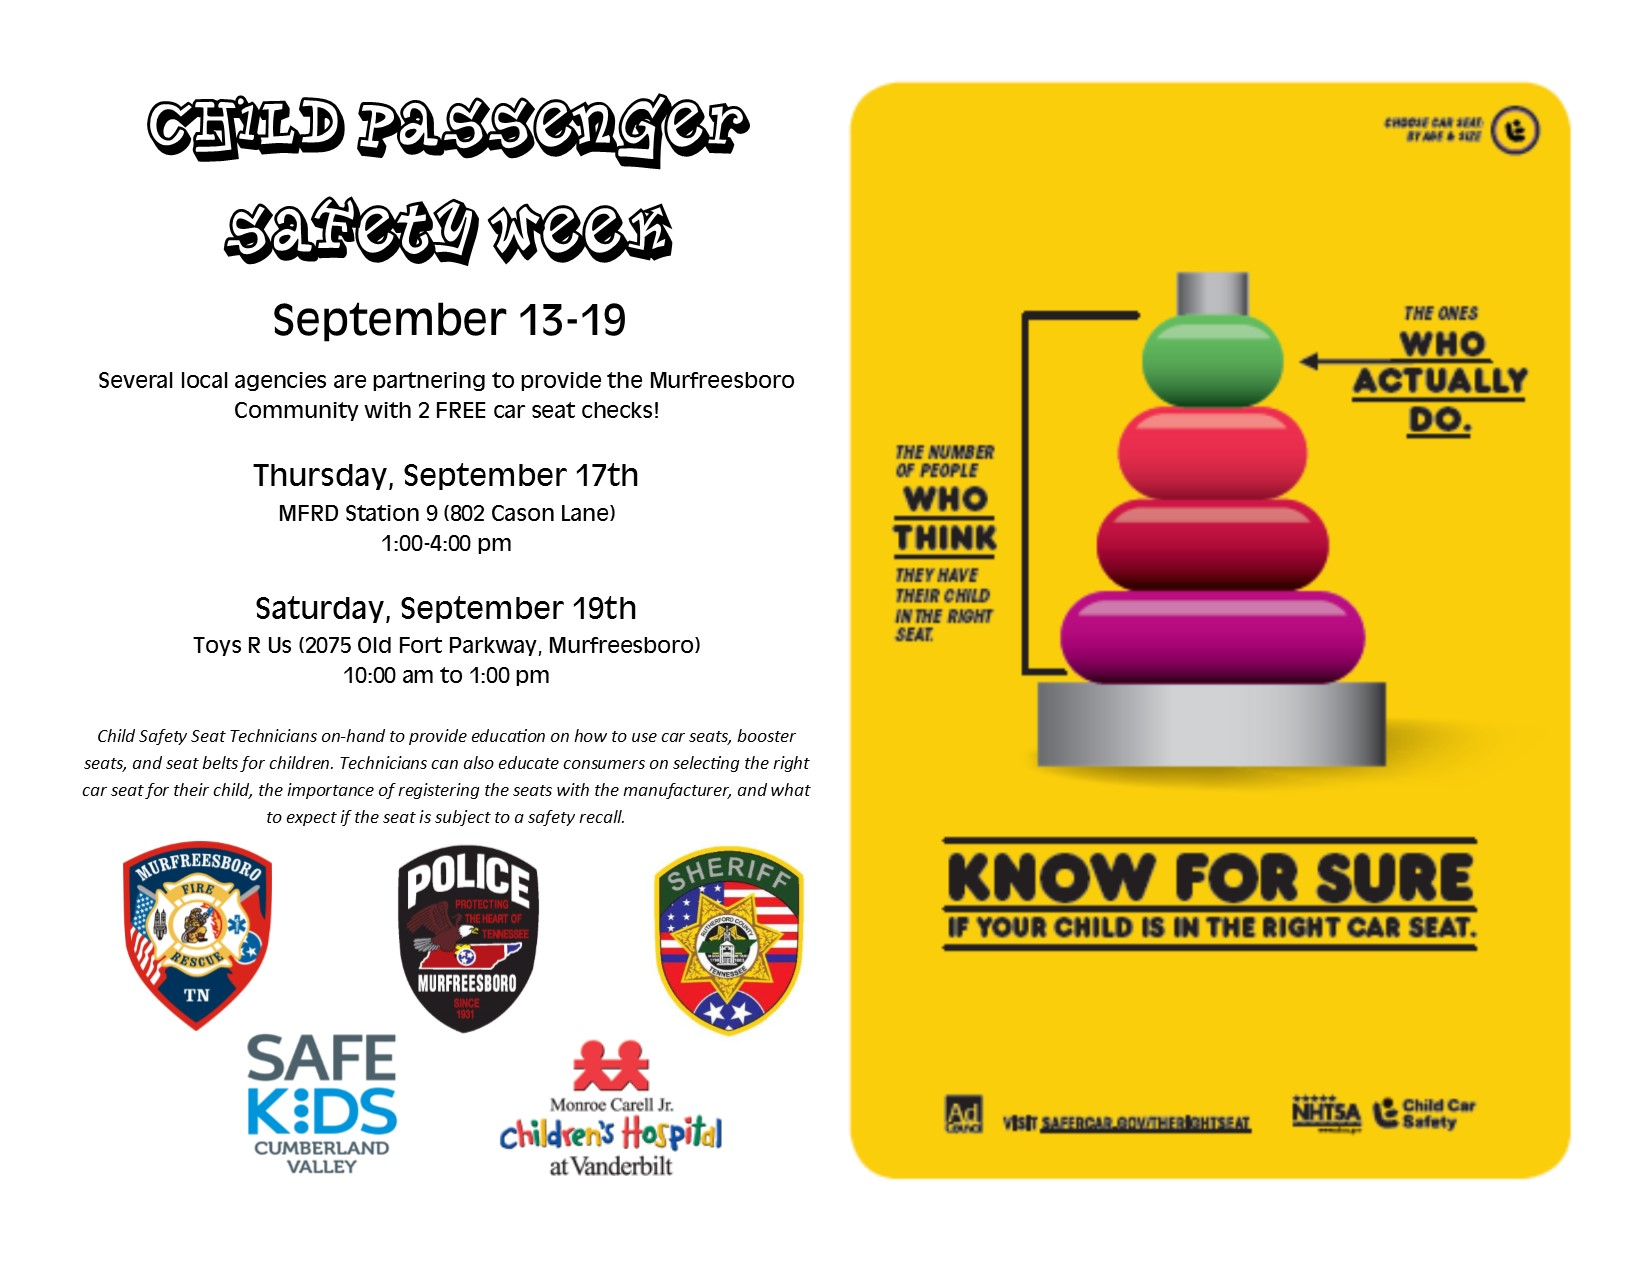 Is your child safety seat in correctly?